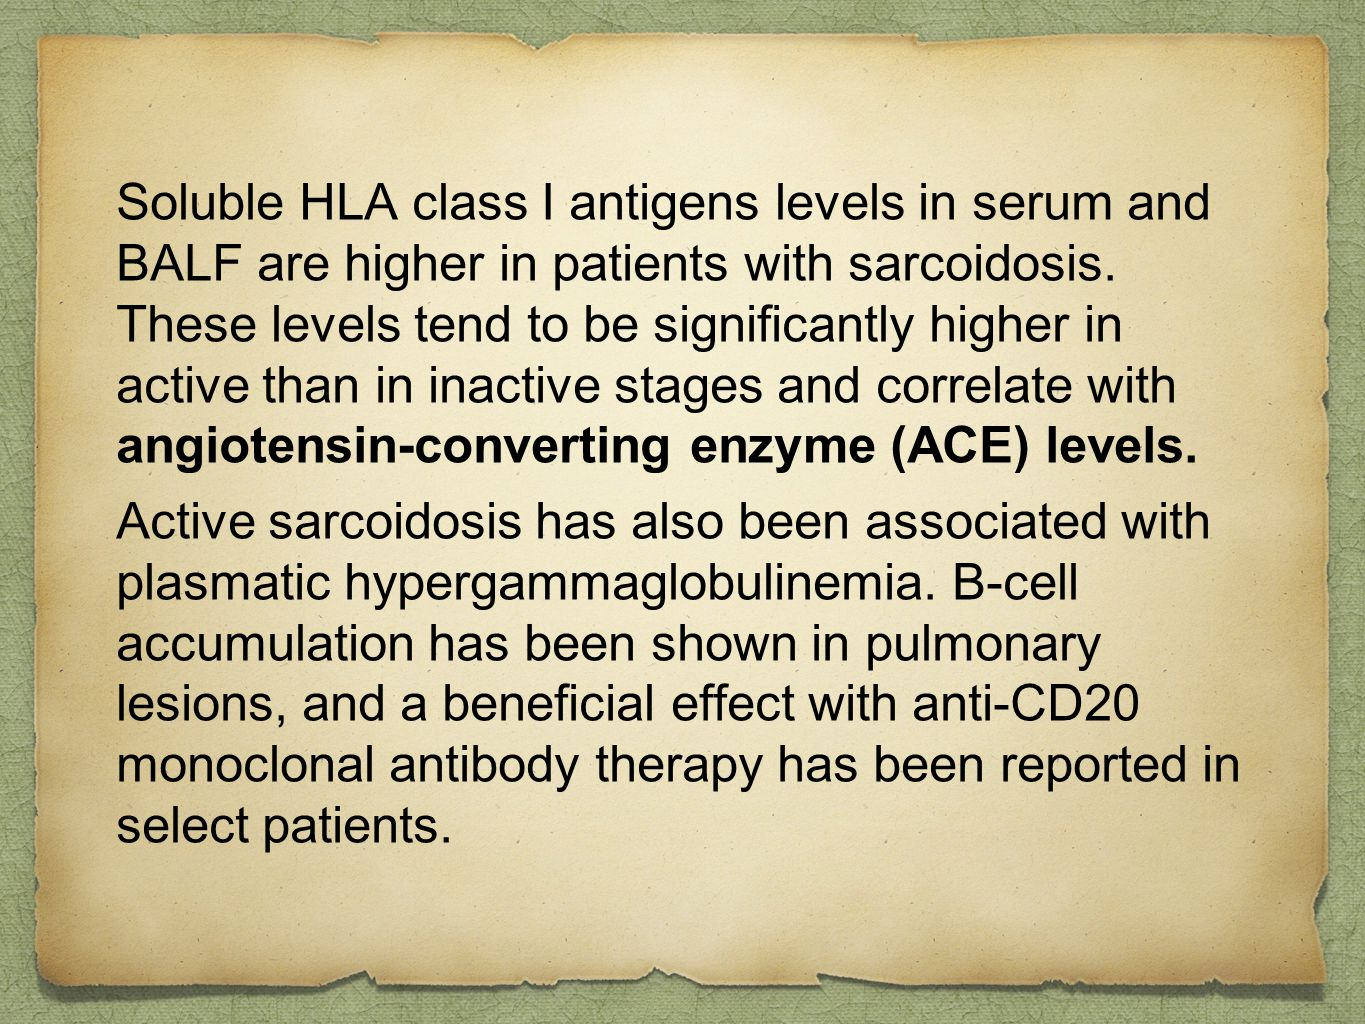 Soluble HLA class I antigens levels in serum and BALF are higher in patients with sarcoidosis. These levels tend to be significantly higher in active than in inactive stages and correlate with angiotensin-converting enzyme (ACE) levels.